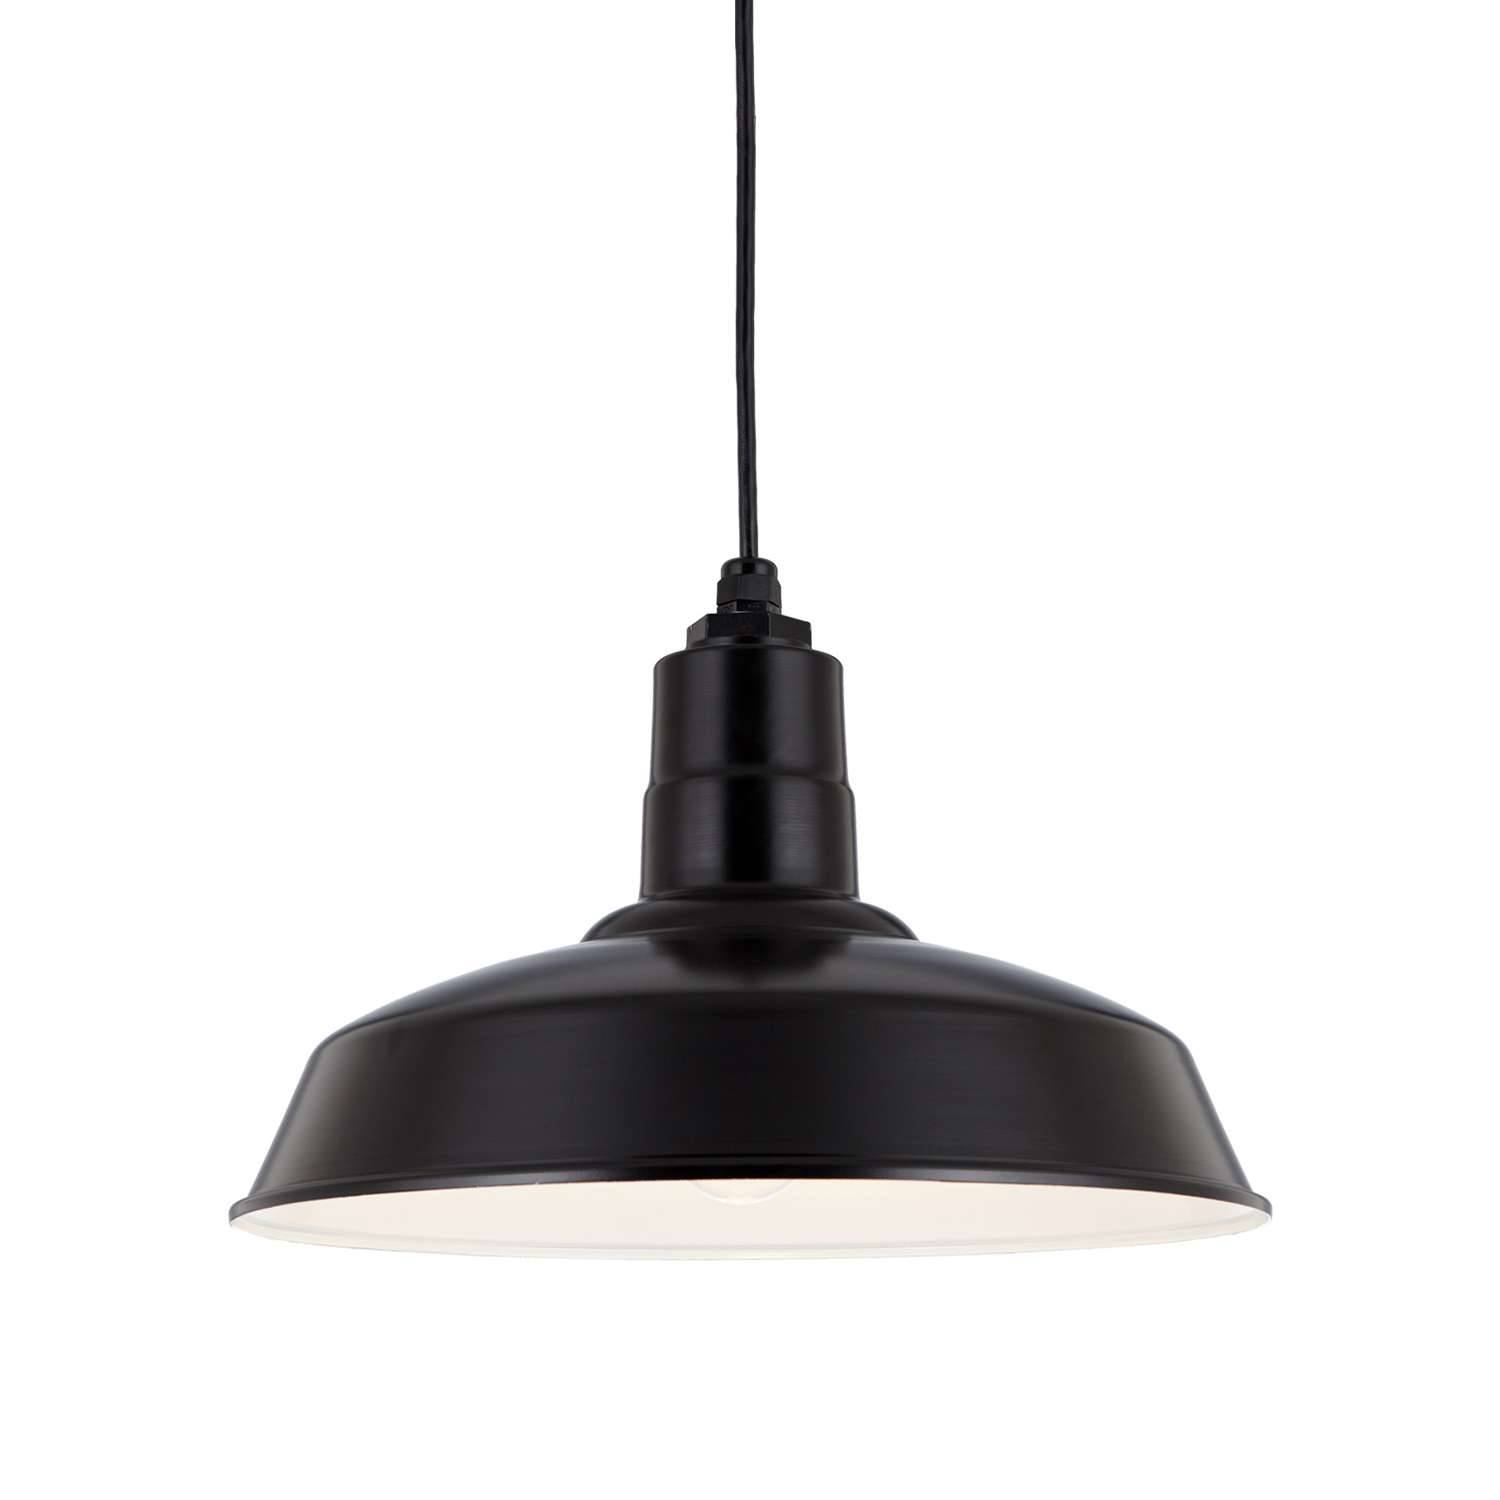 Warehouse Shade Pendant Lighthi-Lite | Ylighting pertaining to Warehouse Pendant Light Fixtures (Image 15 of 15)